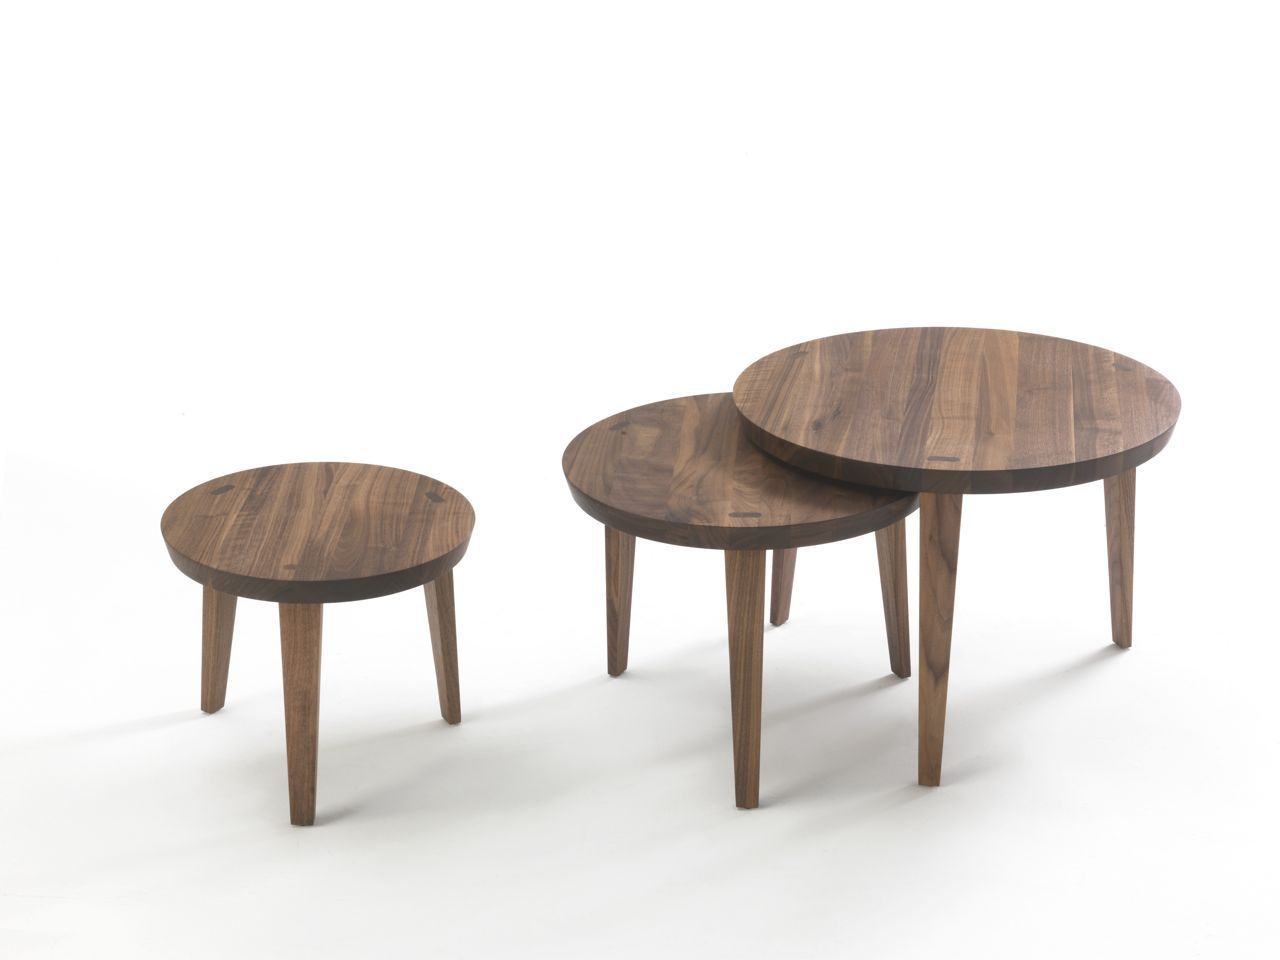 Table Gigogne En Bois Table Gigogne Contemporaine En Bois Massif Ronde Tao 2014